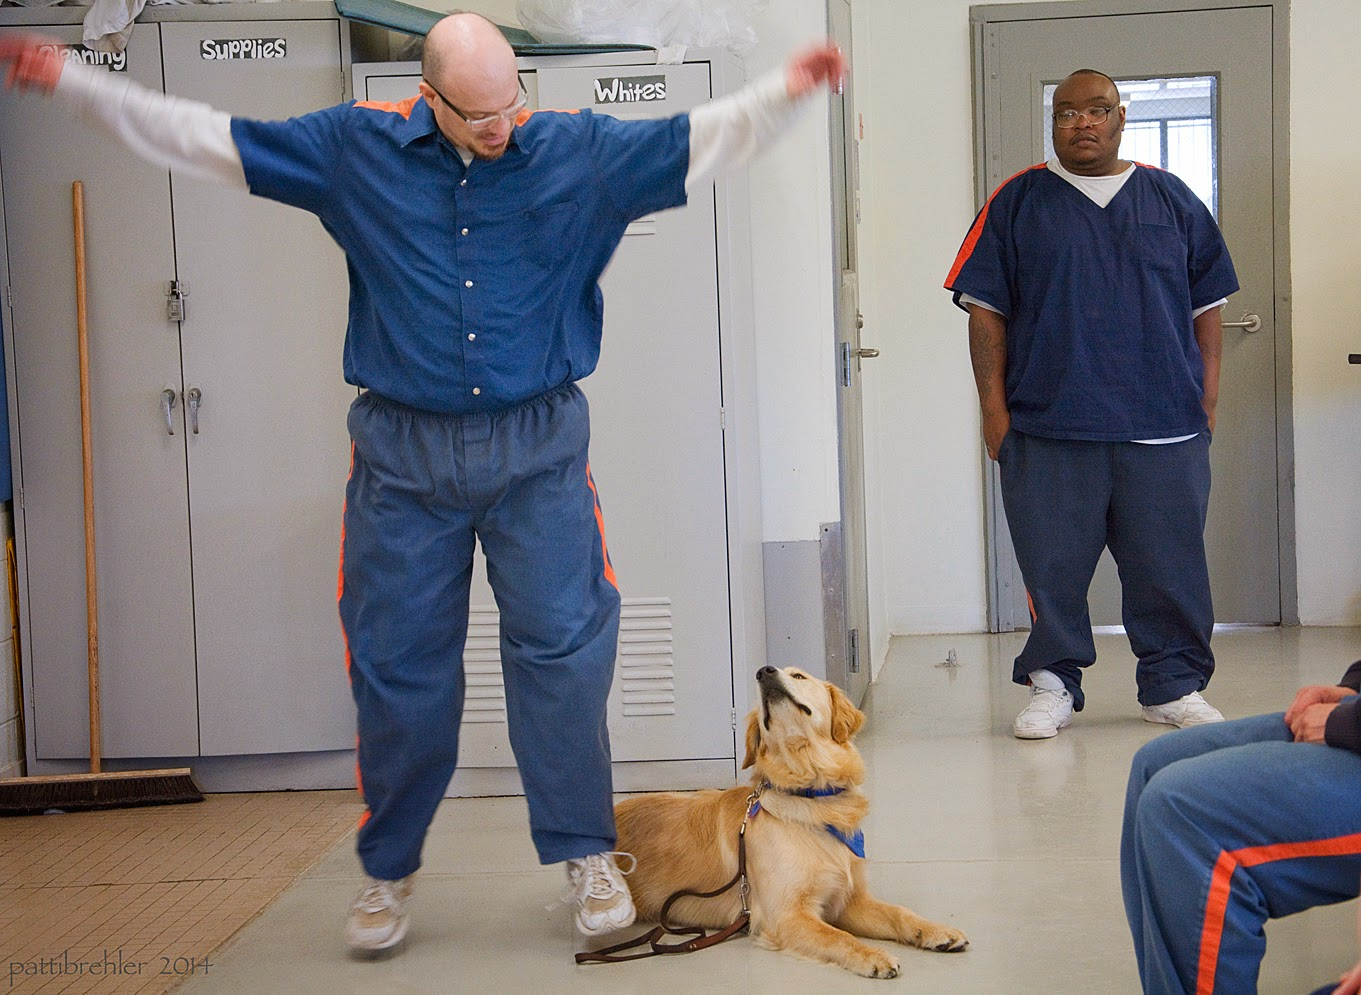 The man that was holding the leash of the golden retriever has set the leash on the floor and is now doing jumping jacks. The golden is lying down and looking up at the man. There is an african american man dressed in the prison blue uniform standing in the background watching. Someone's knees are just visible to the right side of the photo.